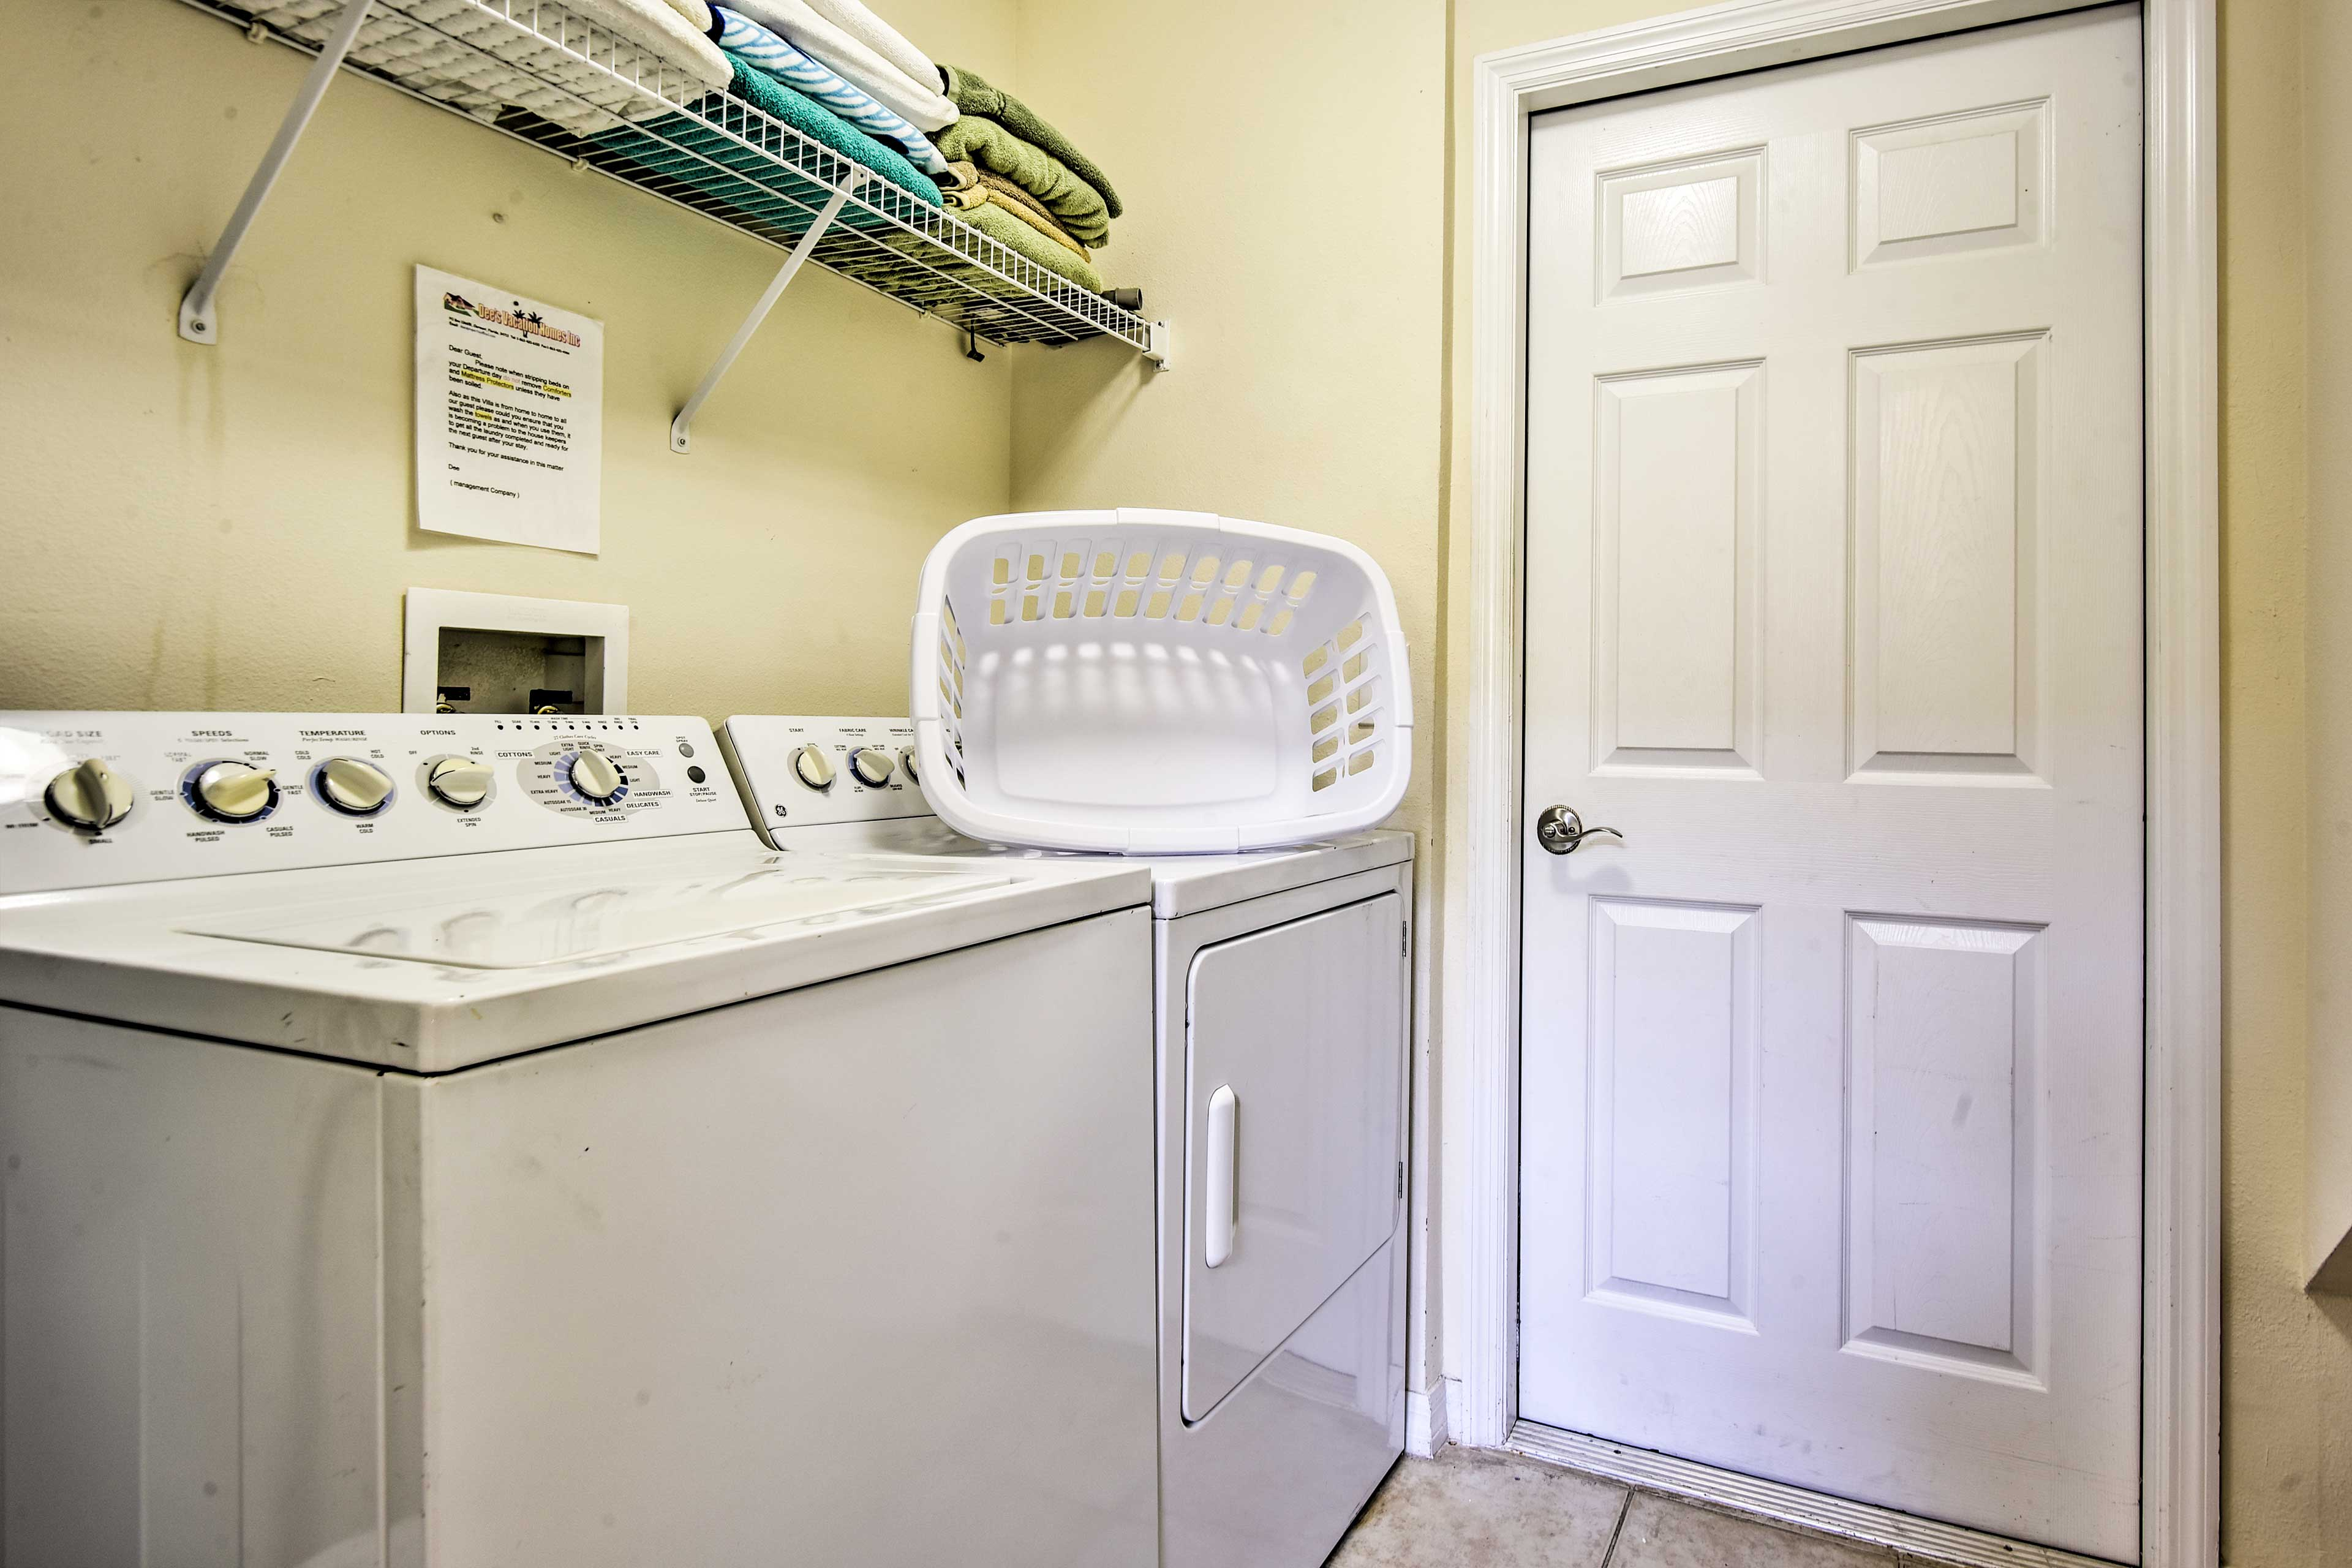 Keep your clothes fresh with in-unit laundry machines.